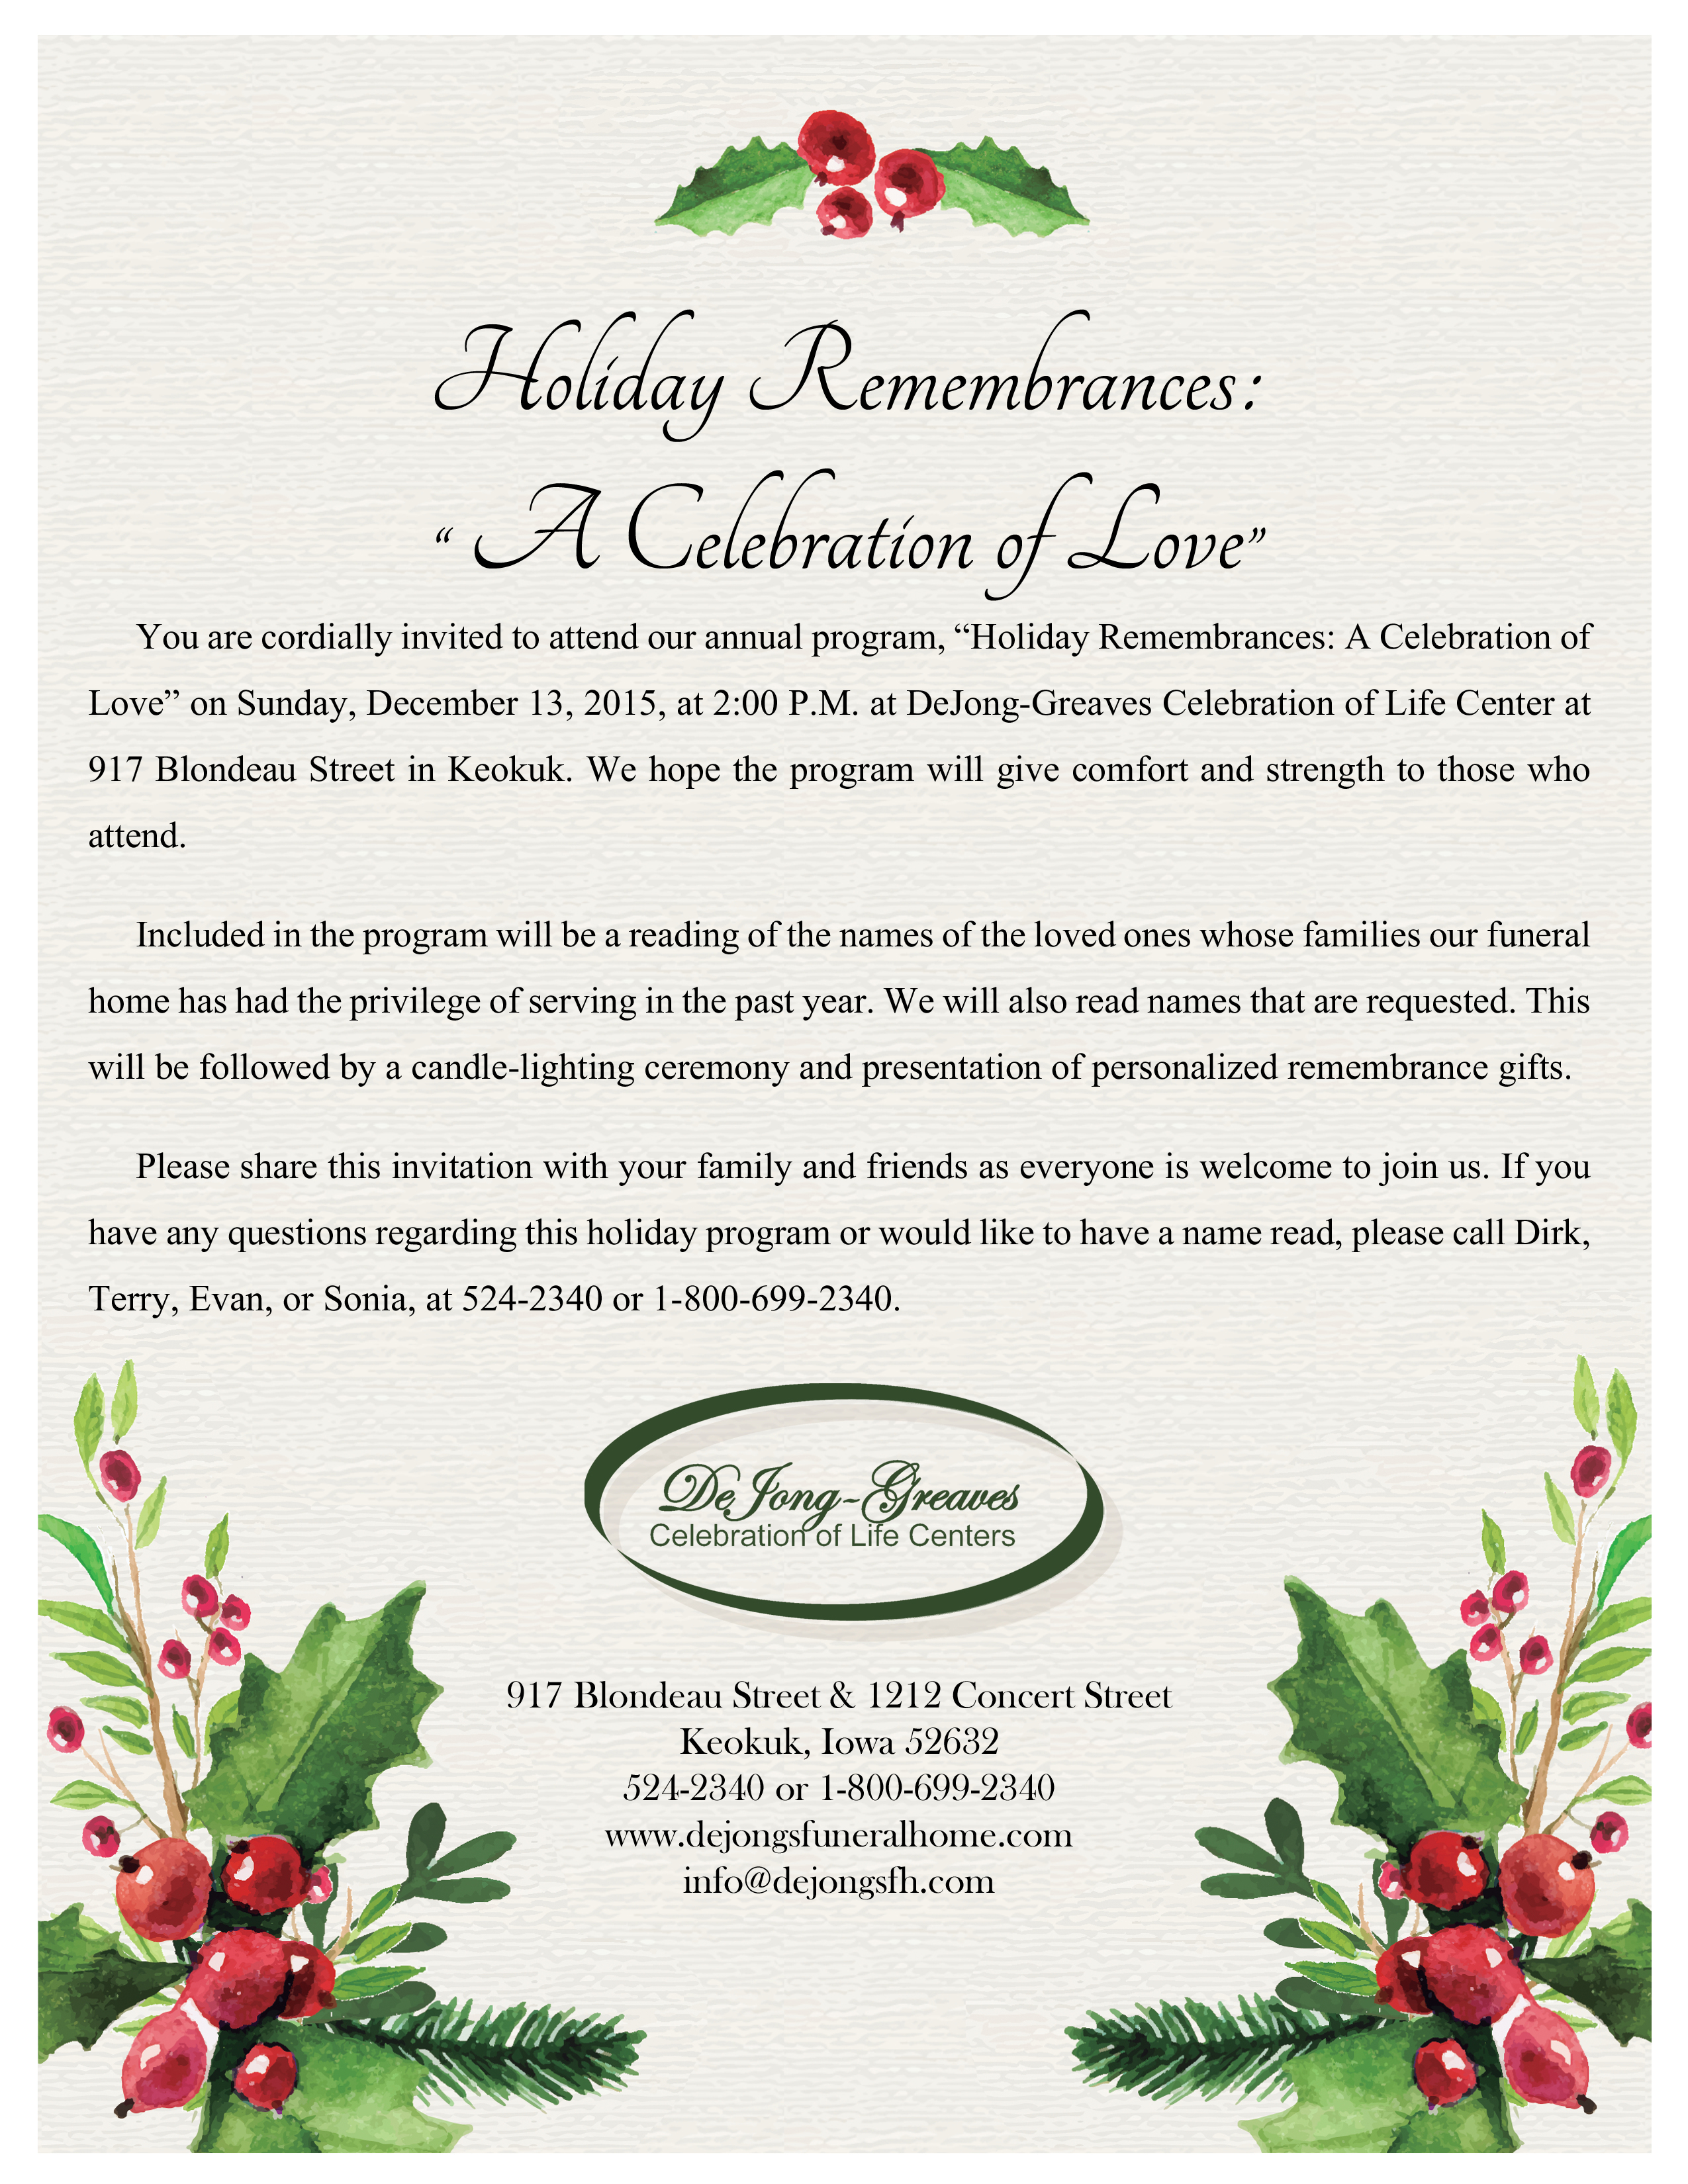 You are Invited to Our Holiday Remembrances Program on December 13th ...